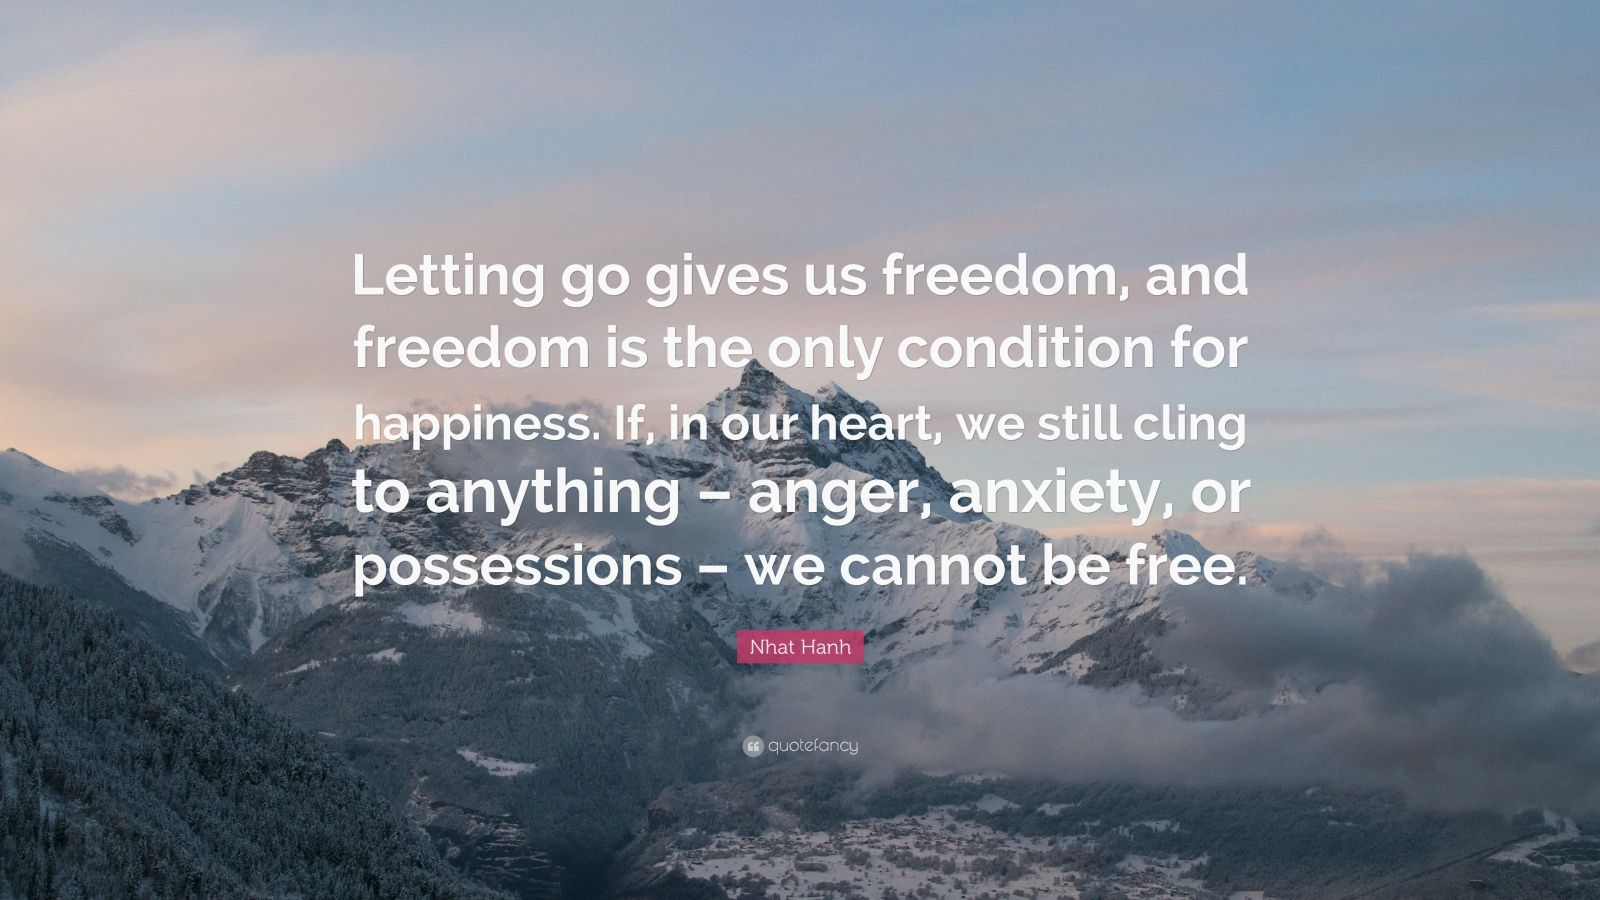 """Nhat Hanh Quote: """"Letting go gives us freedom, and freedom is the only condition for happiness. If, in our heart, we still cling to anything – anger, anxiety, or possessions – we cannot be free."""""""